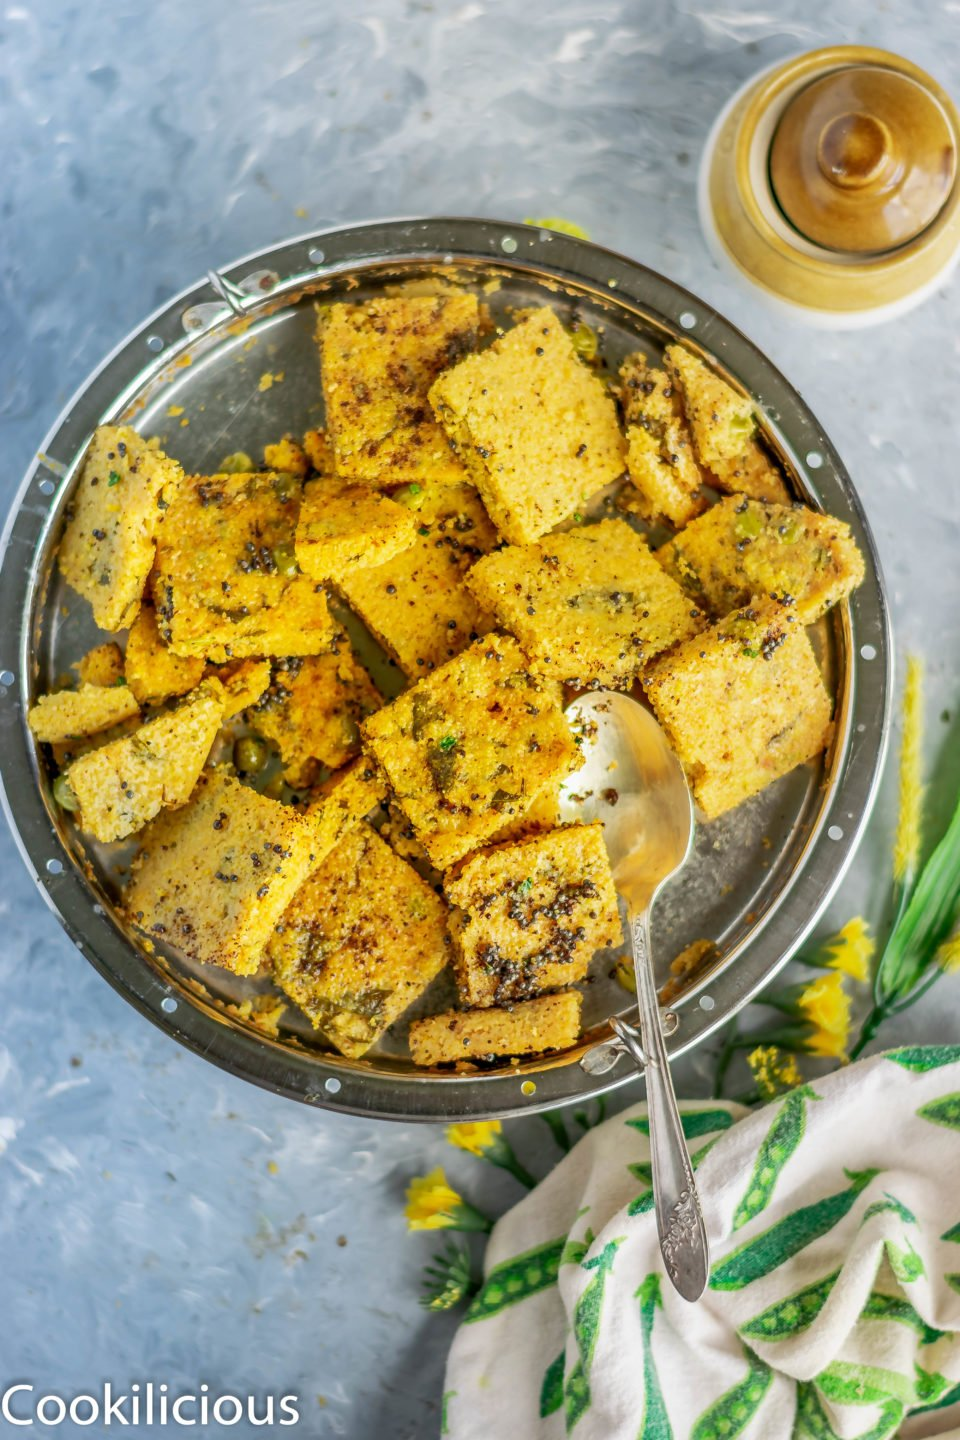 a platter full of Corn Dhokla